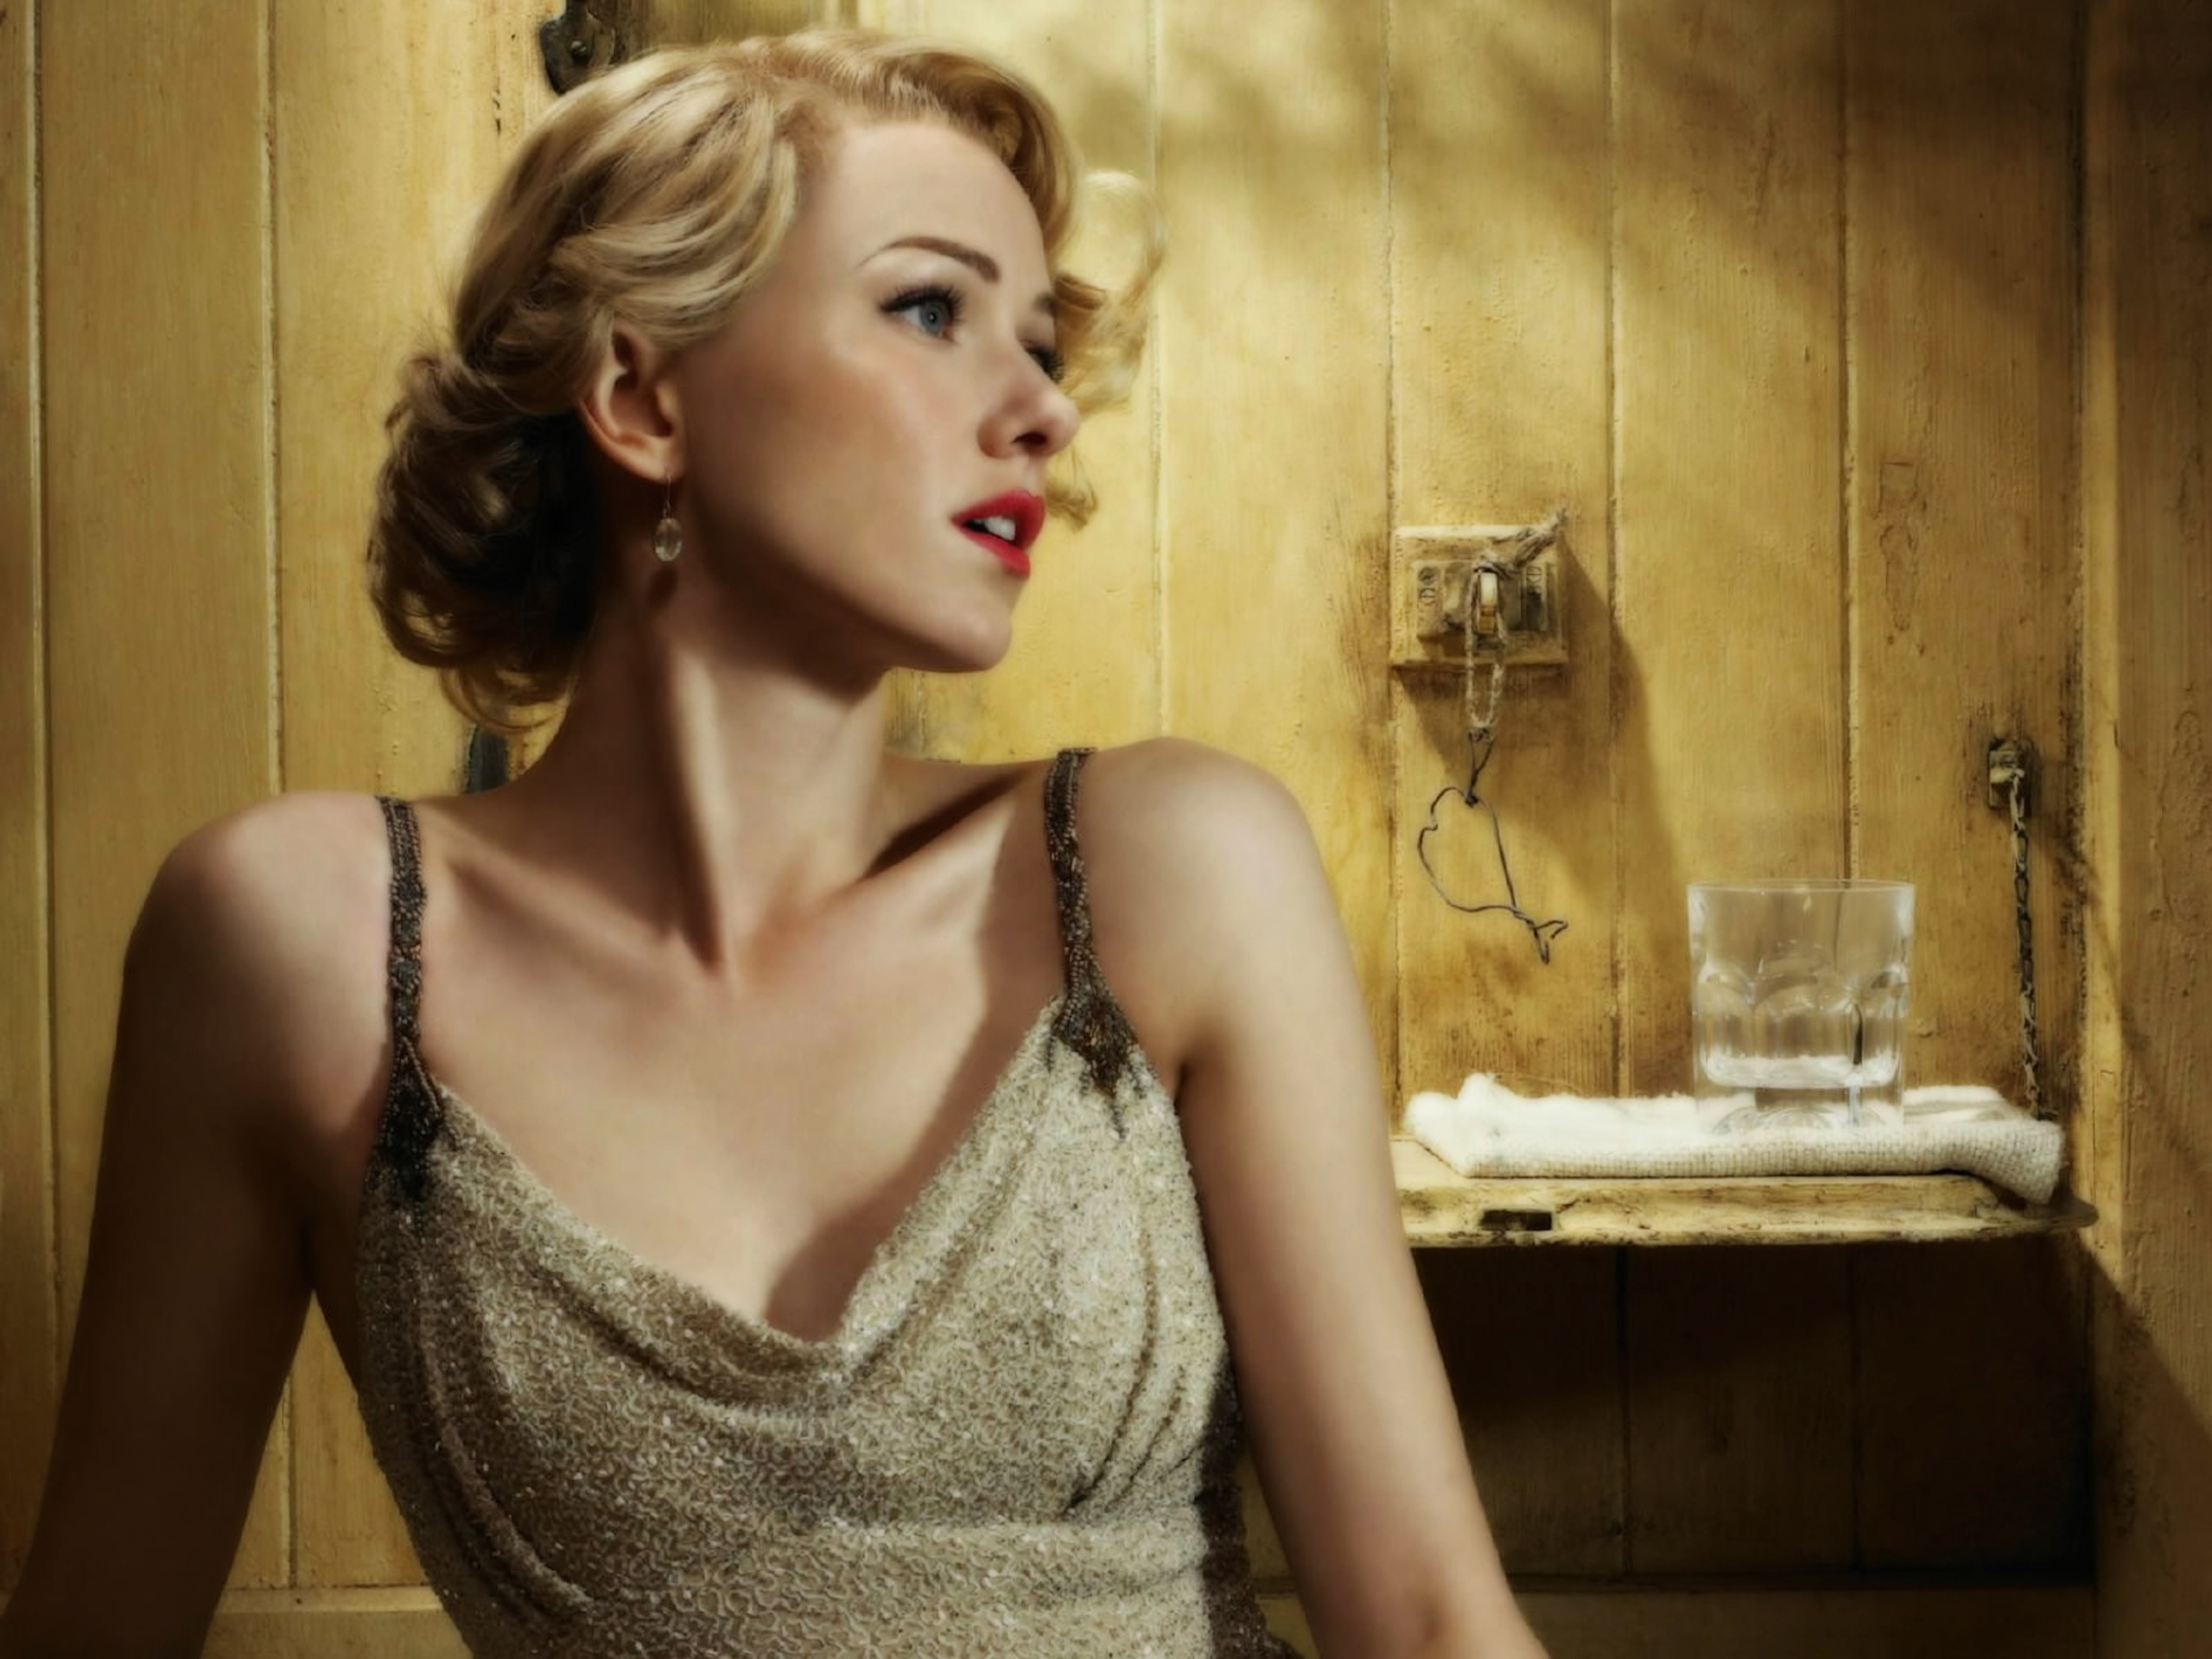 Naomi Watts Actress Mulholland Dr Naomi Ellen Watts was born on September 28 1968 in Shoreham England to Myfanwy Edwards Miv Roberts an antiques dealer